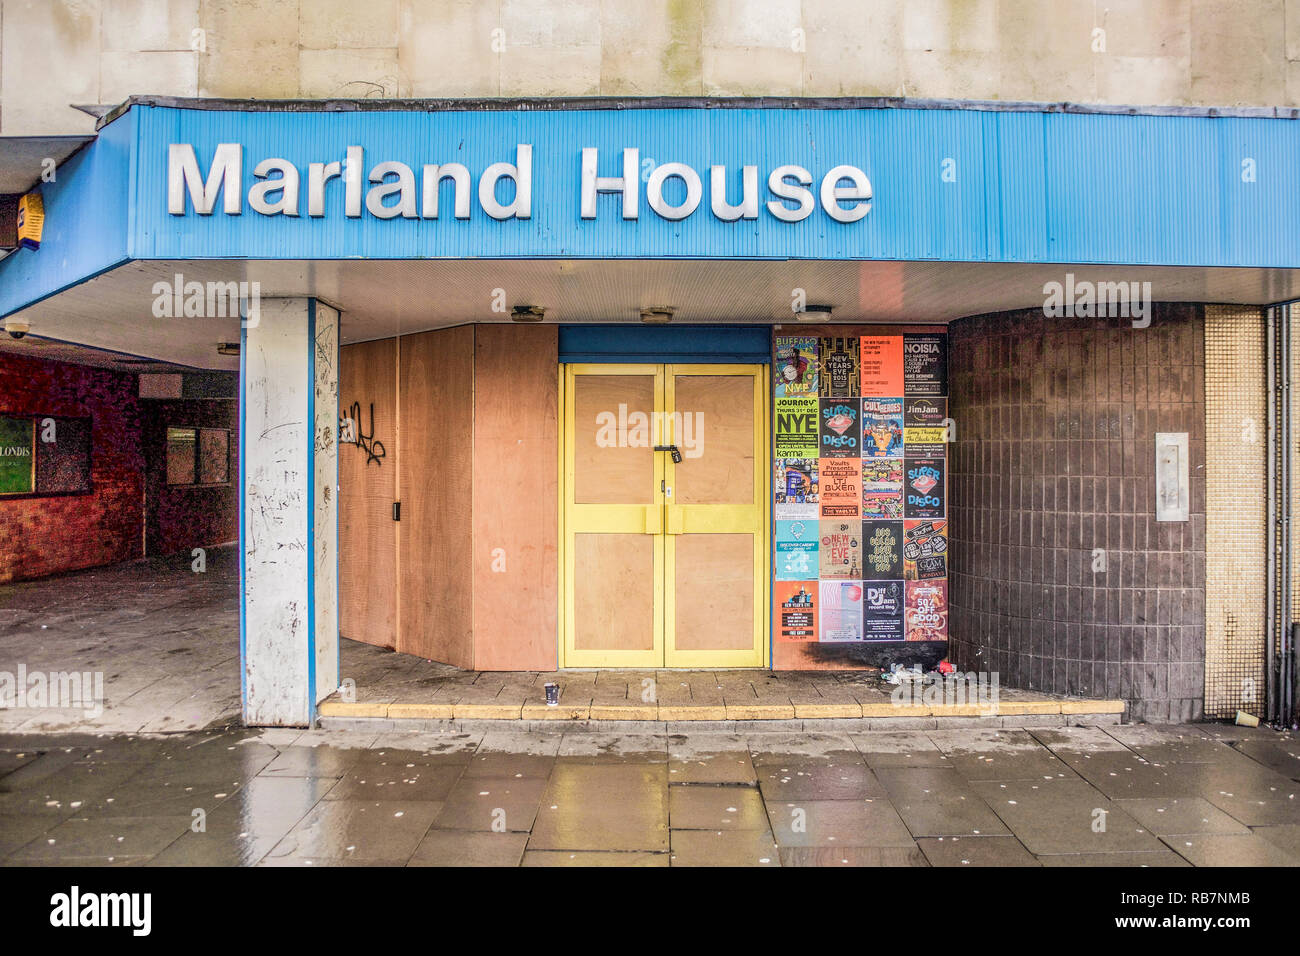 Marland House Cardiff due for demolition January 2016 to make way for the new transport hub - Stock Image